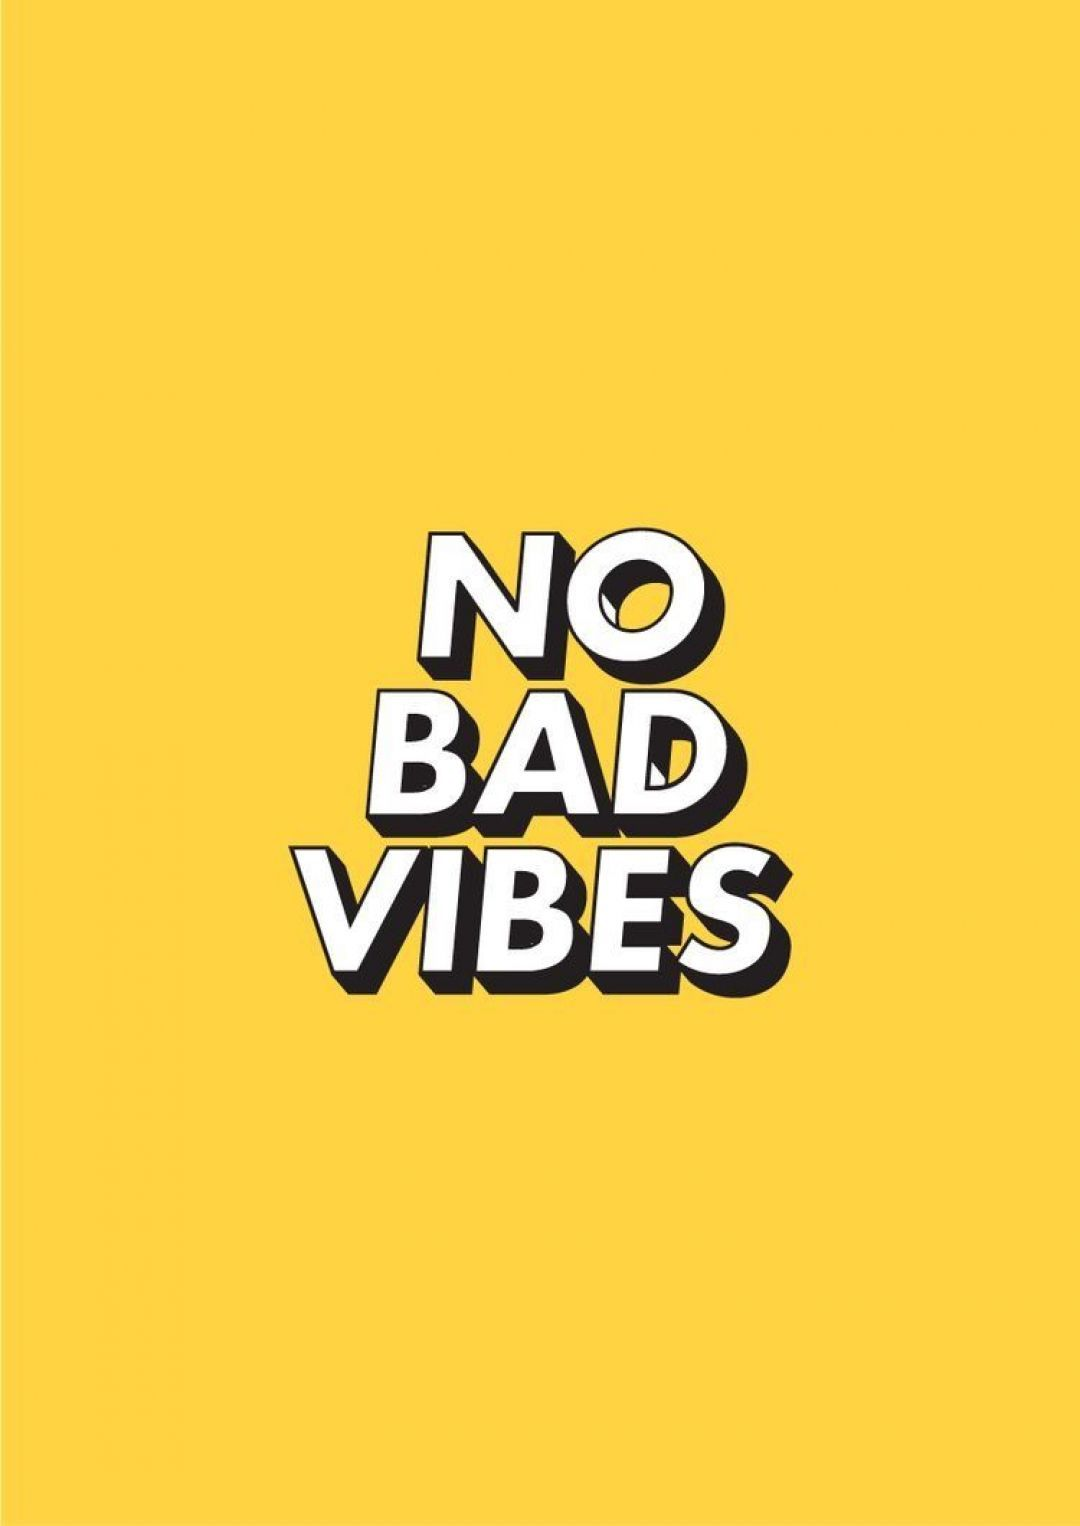 Wallpaper Iphone Yellow Aesthetic Wallpapers Iphone 14 In 2020 Good Vibes Quotes Yellow Aesthetic Vibe Quote